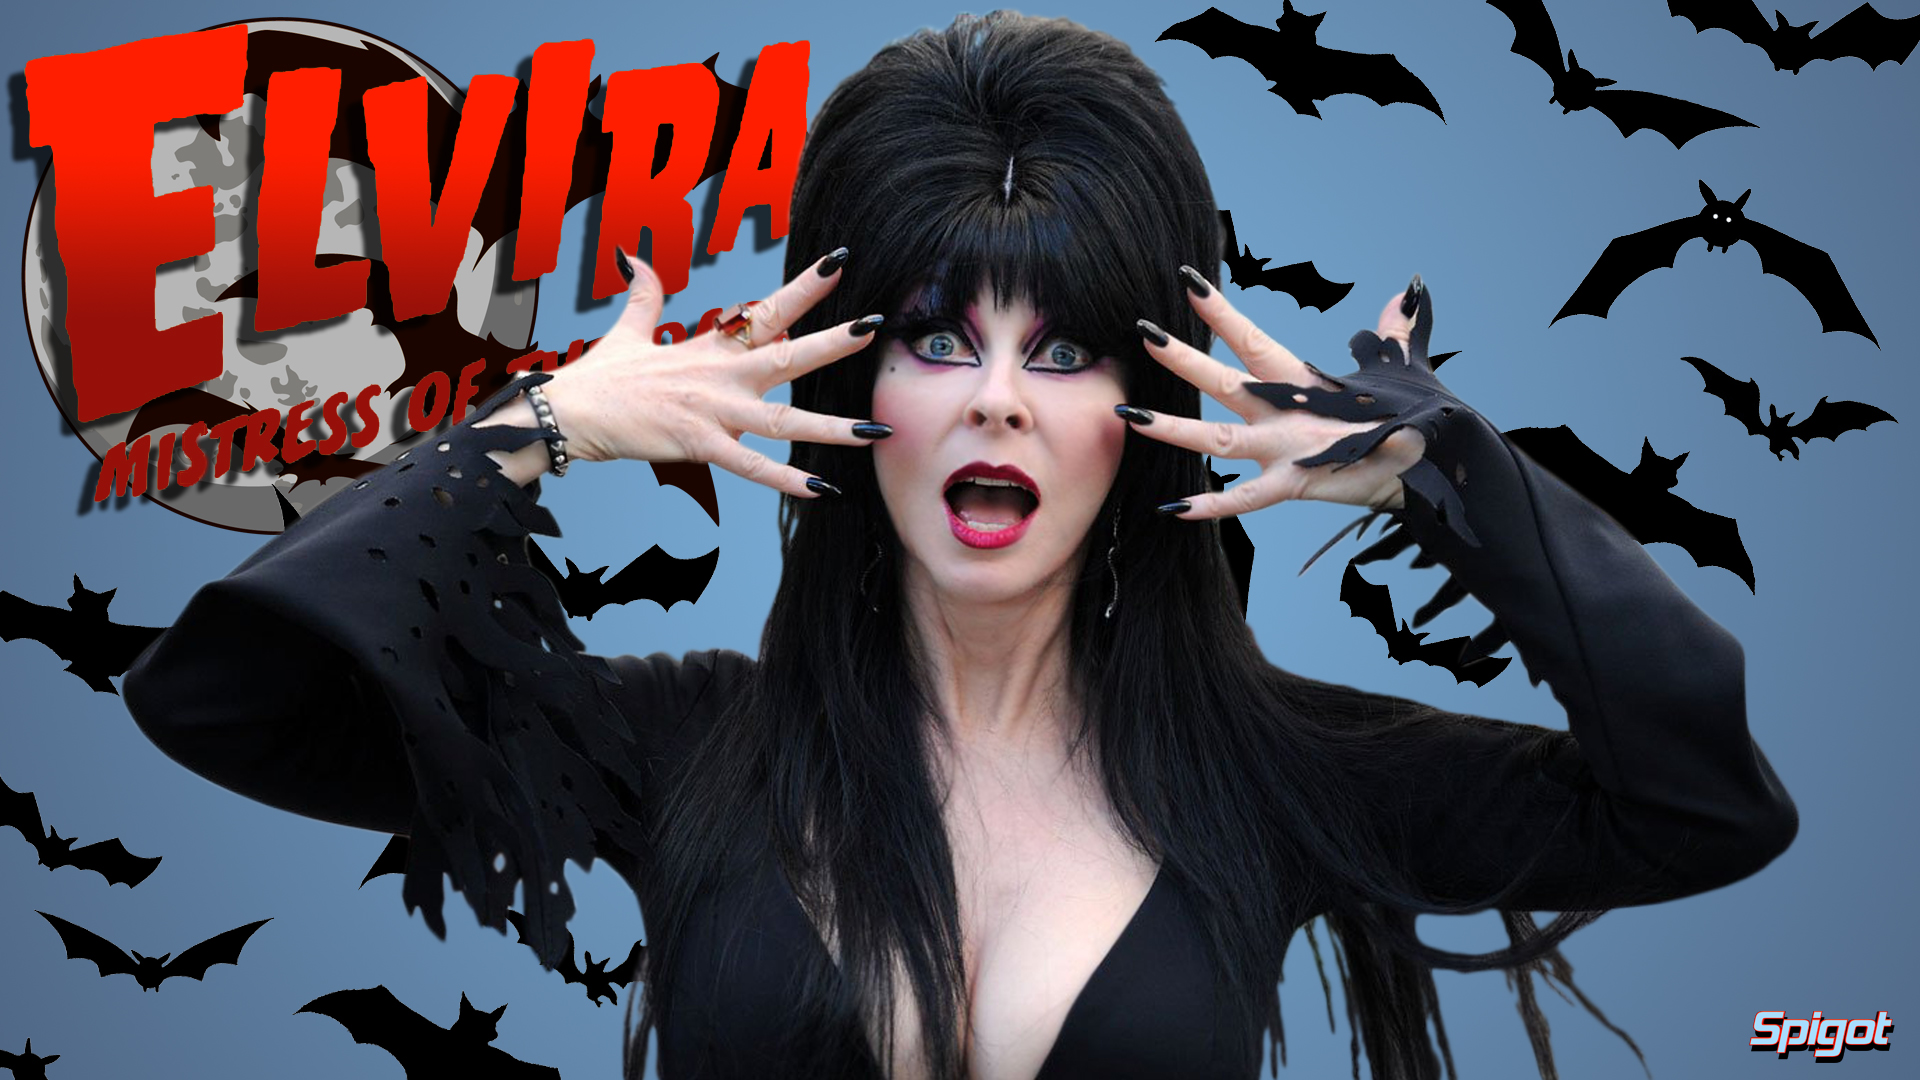 Elvira Mistress of the Dark George Spigots Blog 1920x1080